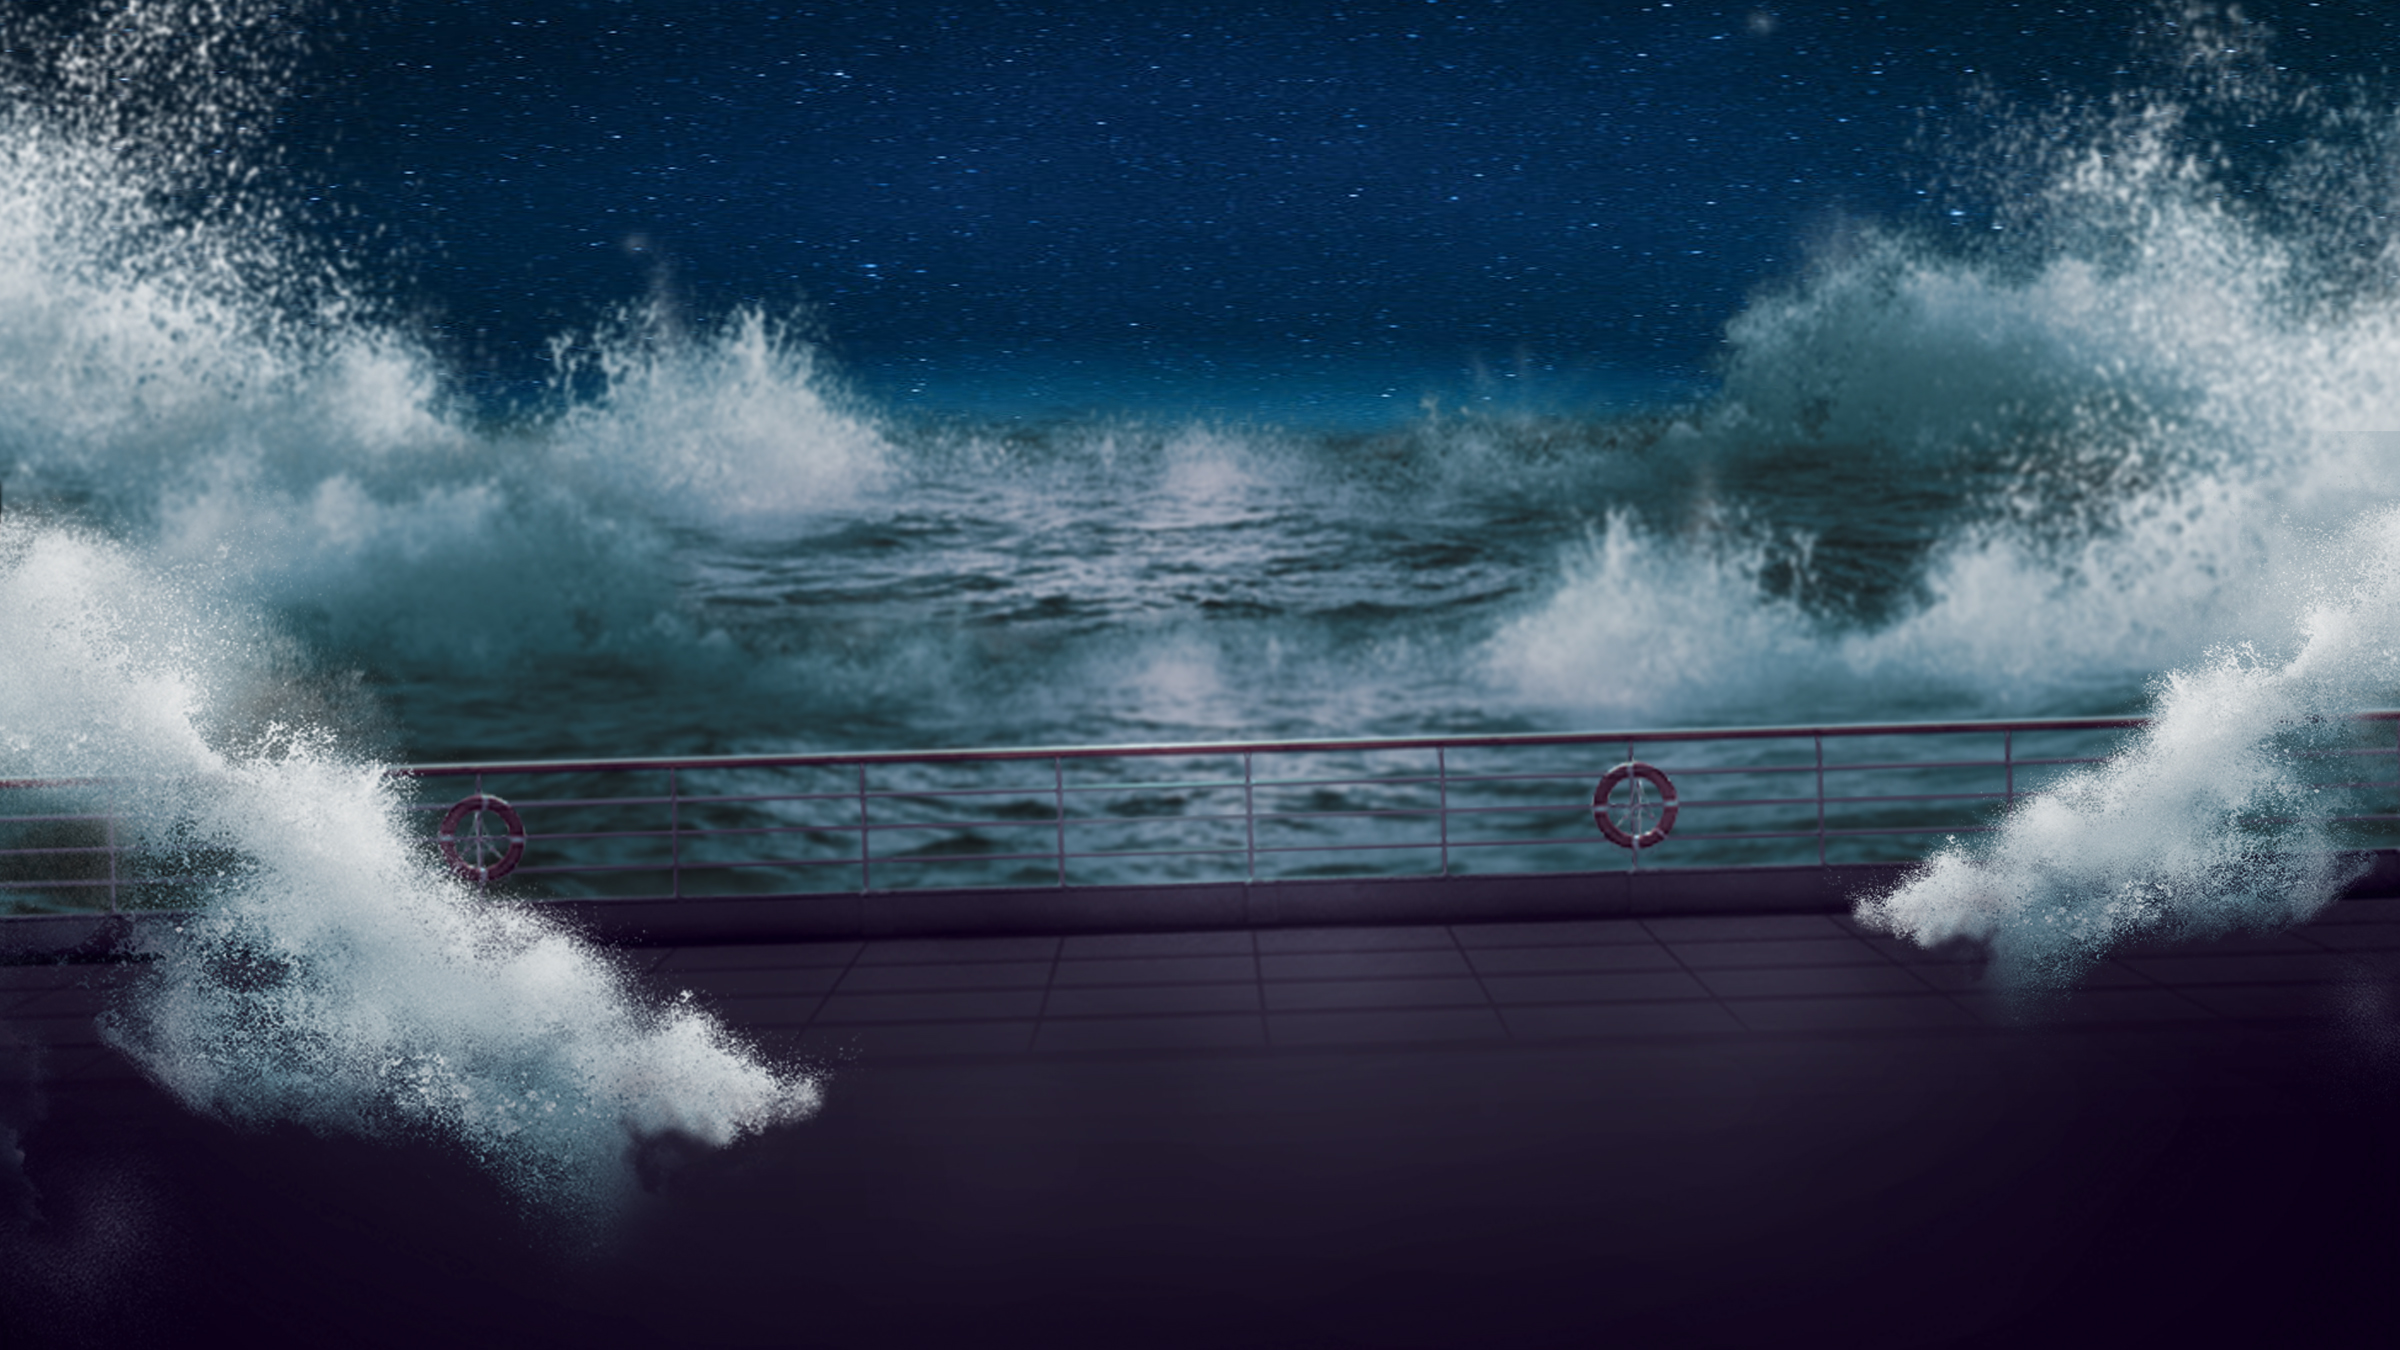 Cruise Ship In A Stormy Sea By DrZurnPhD On DeviantArt